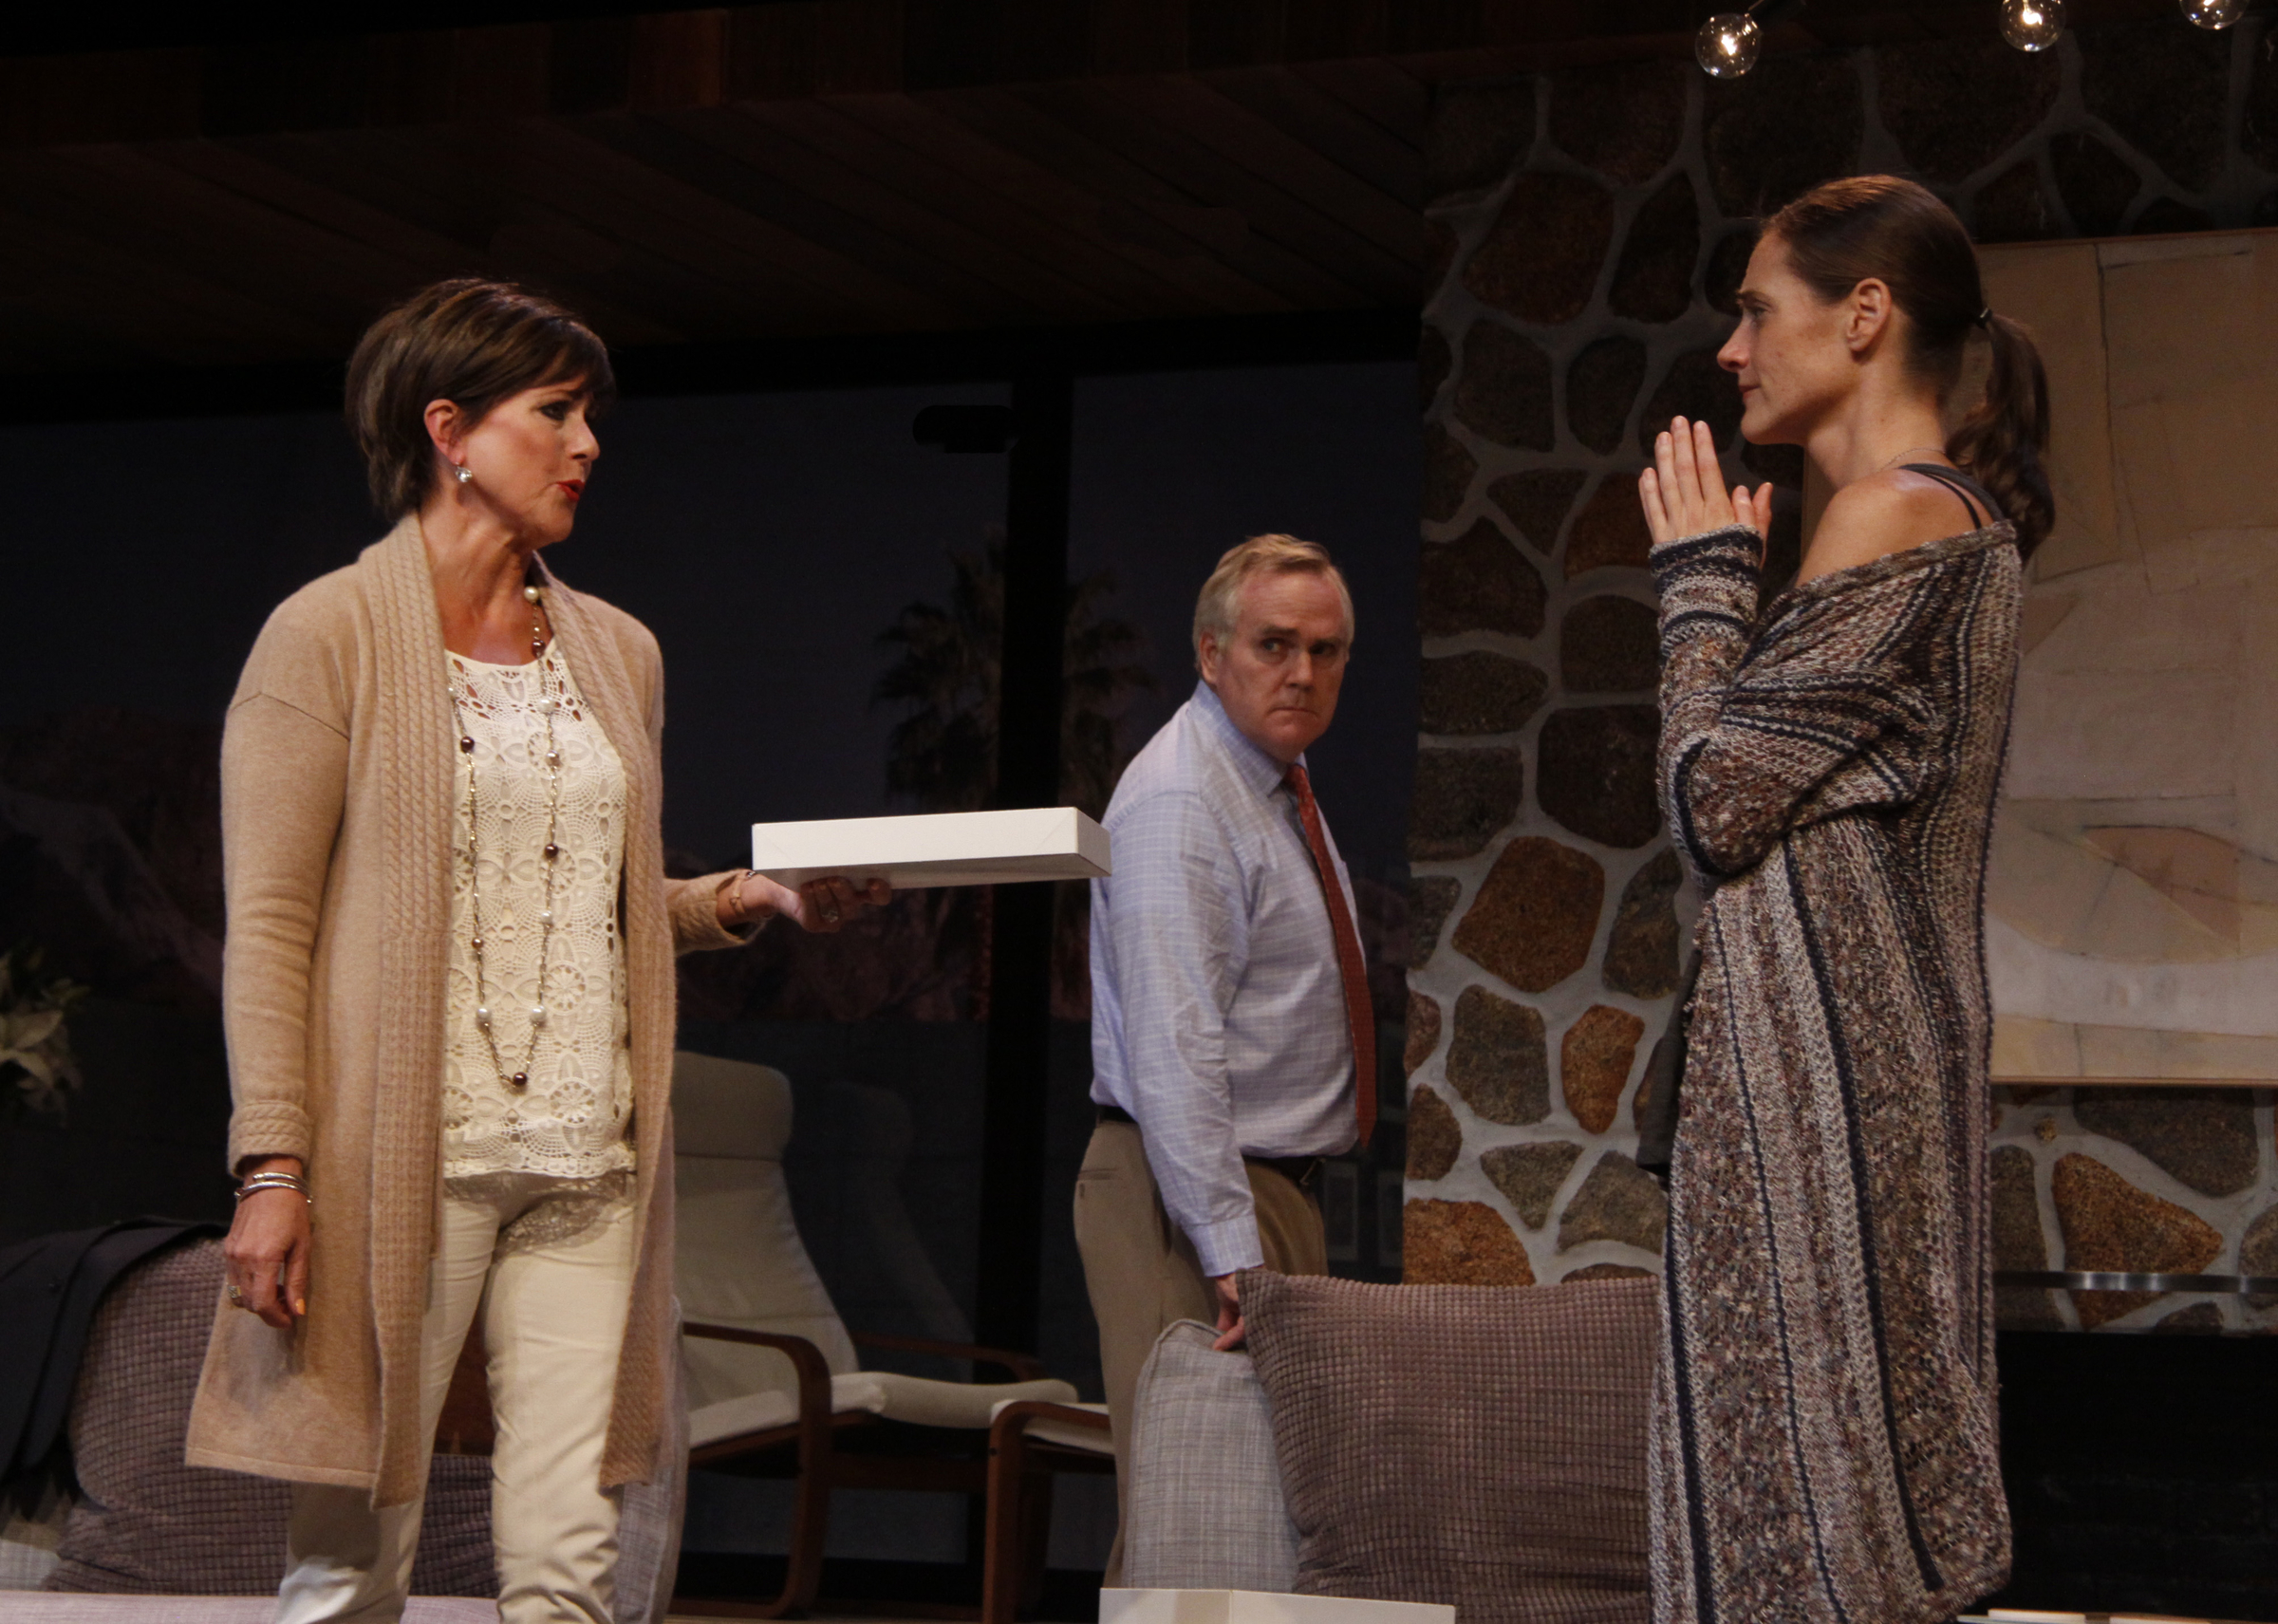 left COLLEEN ZENK as Polly, center MALACHY CLEARY as Lyman, right BRENDA WITHERS as Brooke /photo credit: SUE COFLIN/MAX PHOTOS